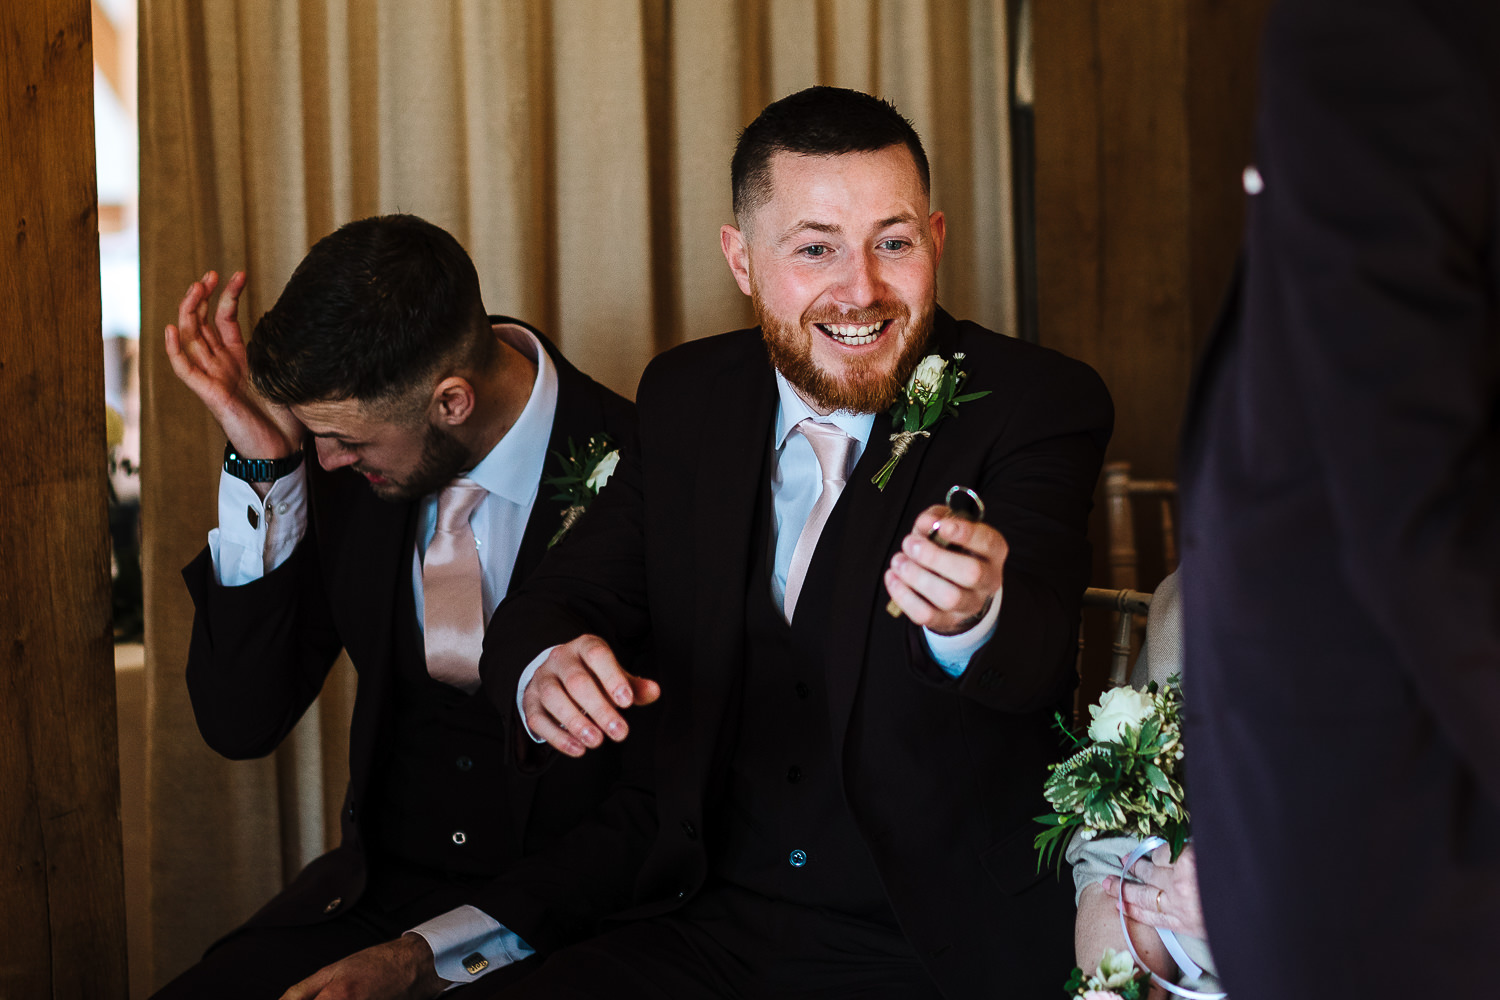 Groomsmen laughing in the ceremony room